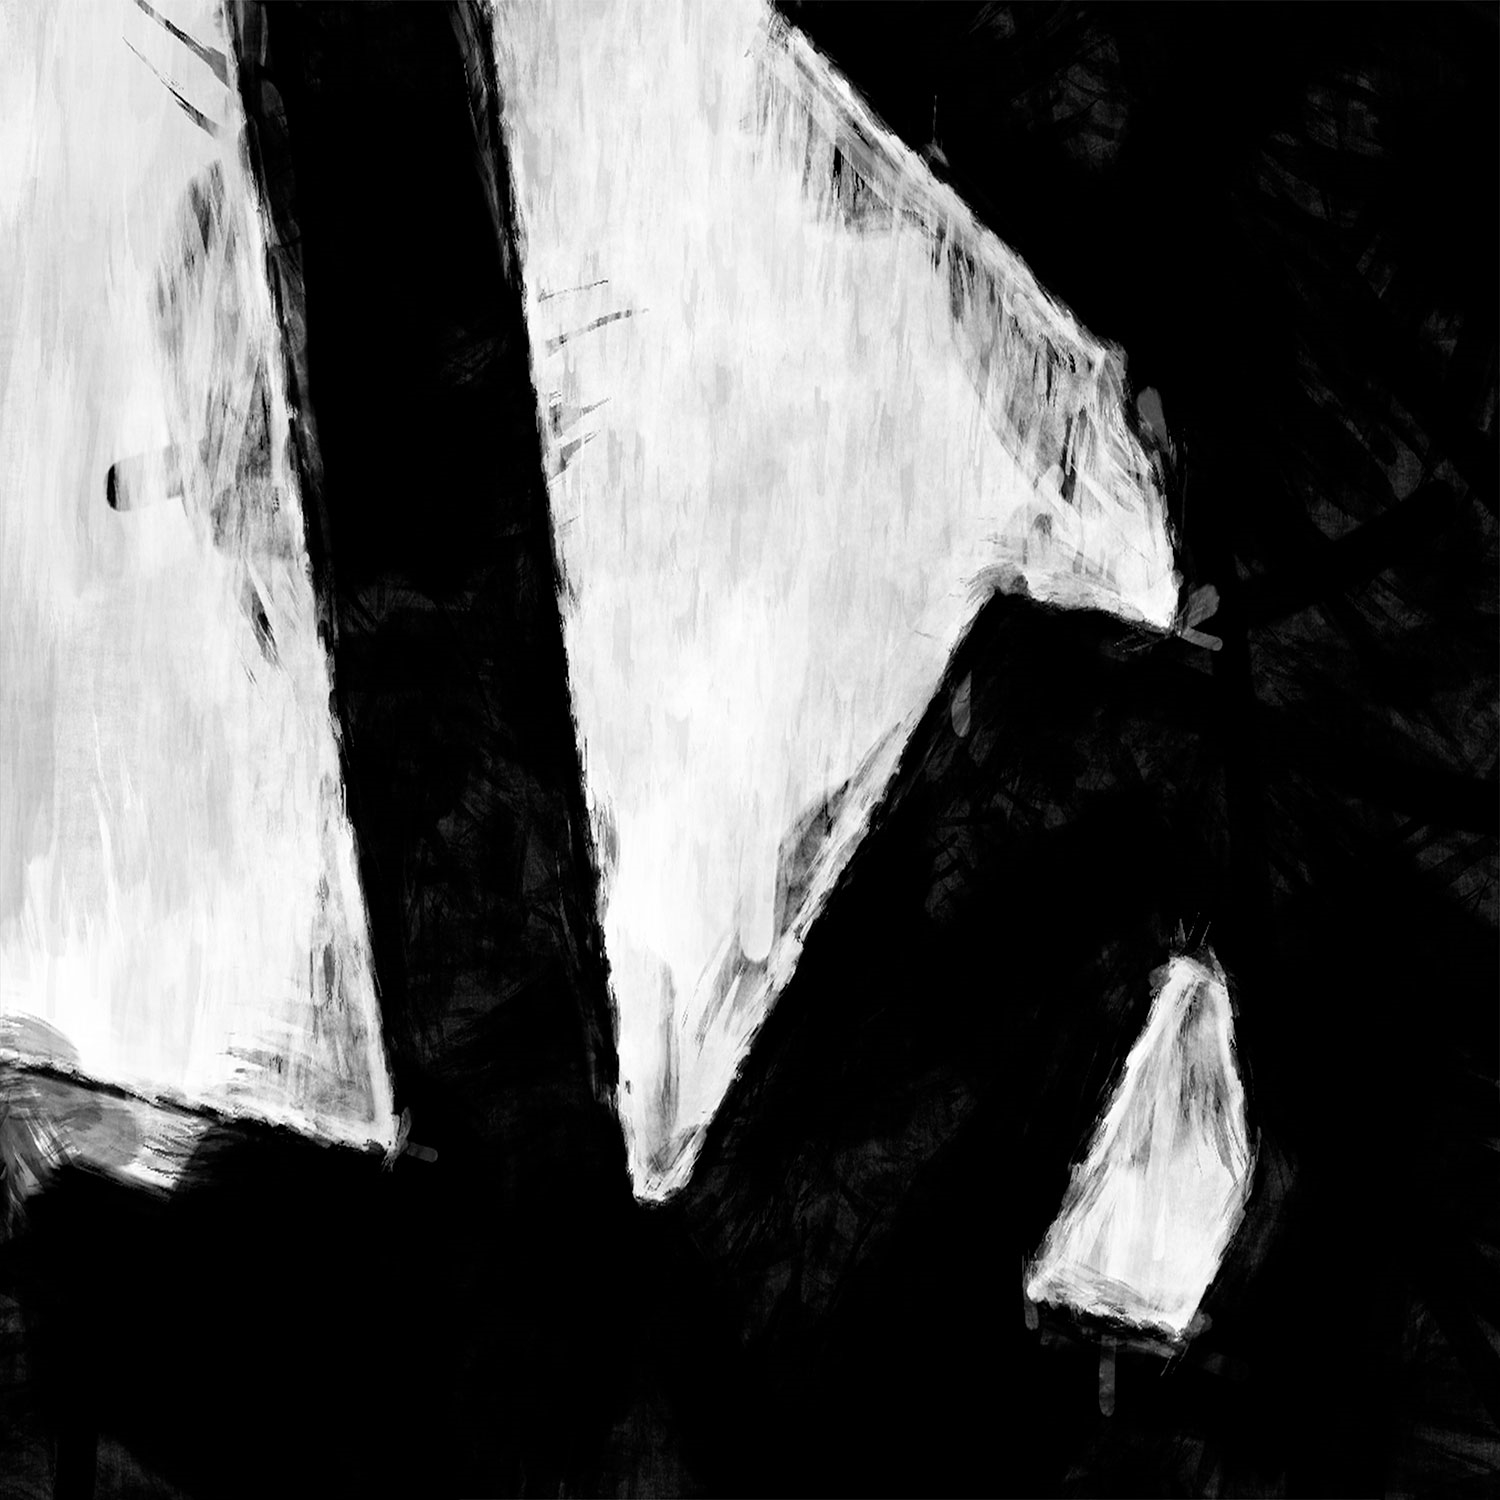 Abstract-Black-and-White-7446-2.jpg